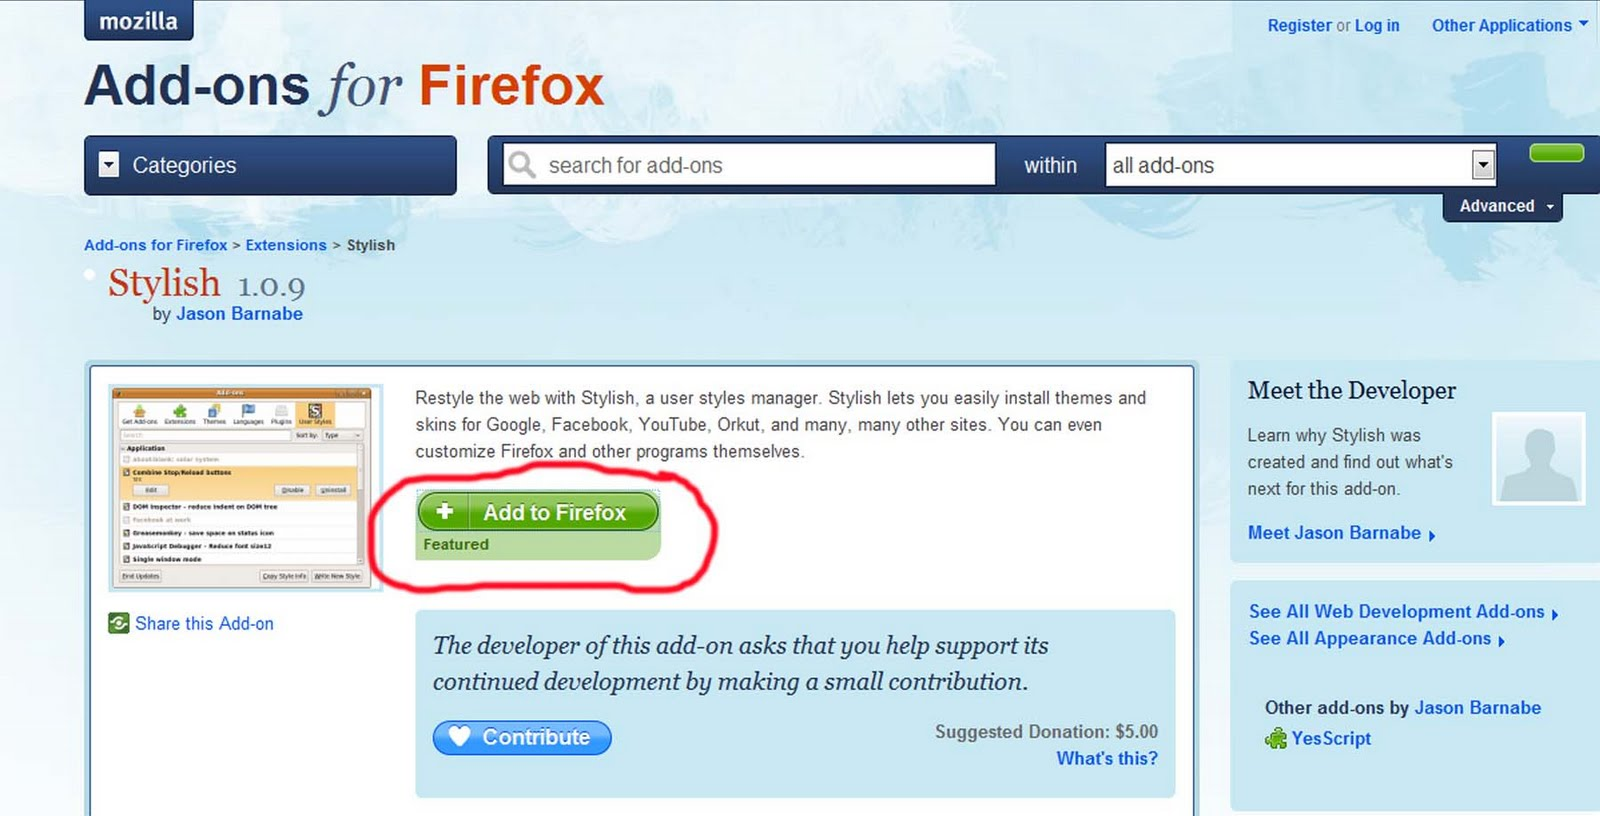 Find and install add-ons to add features to Firefox